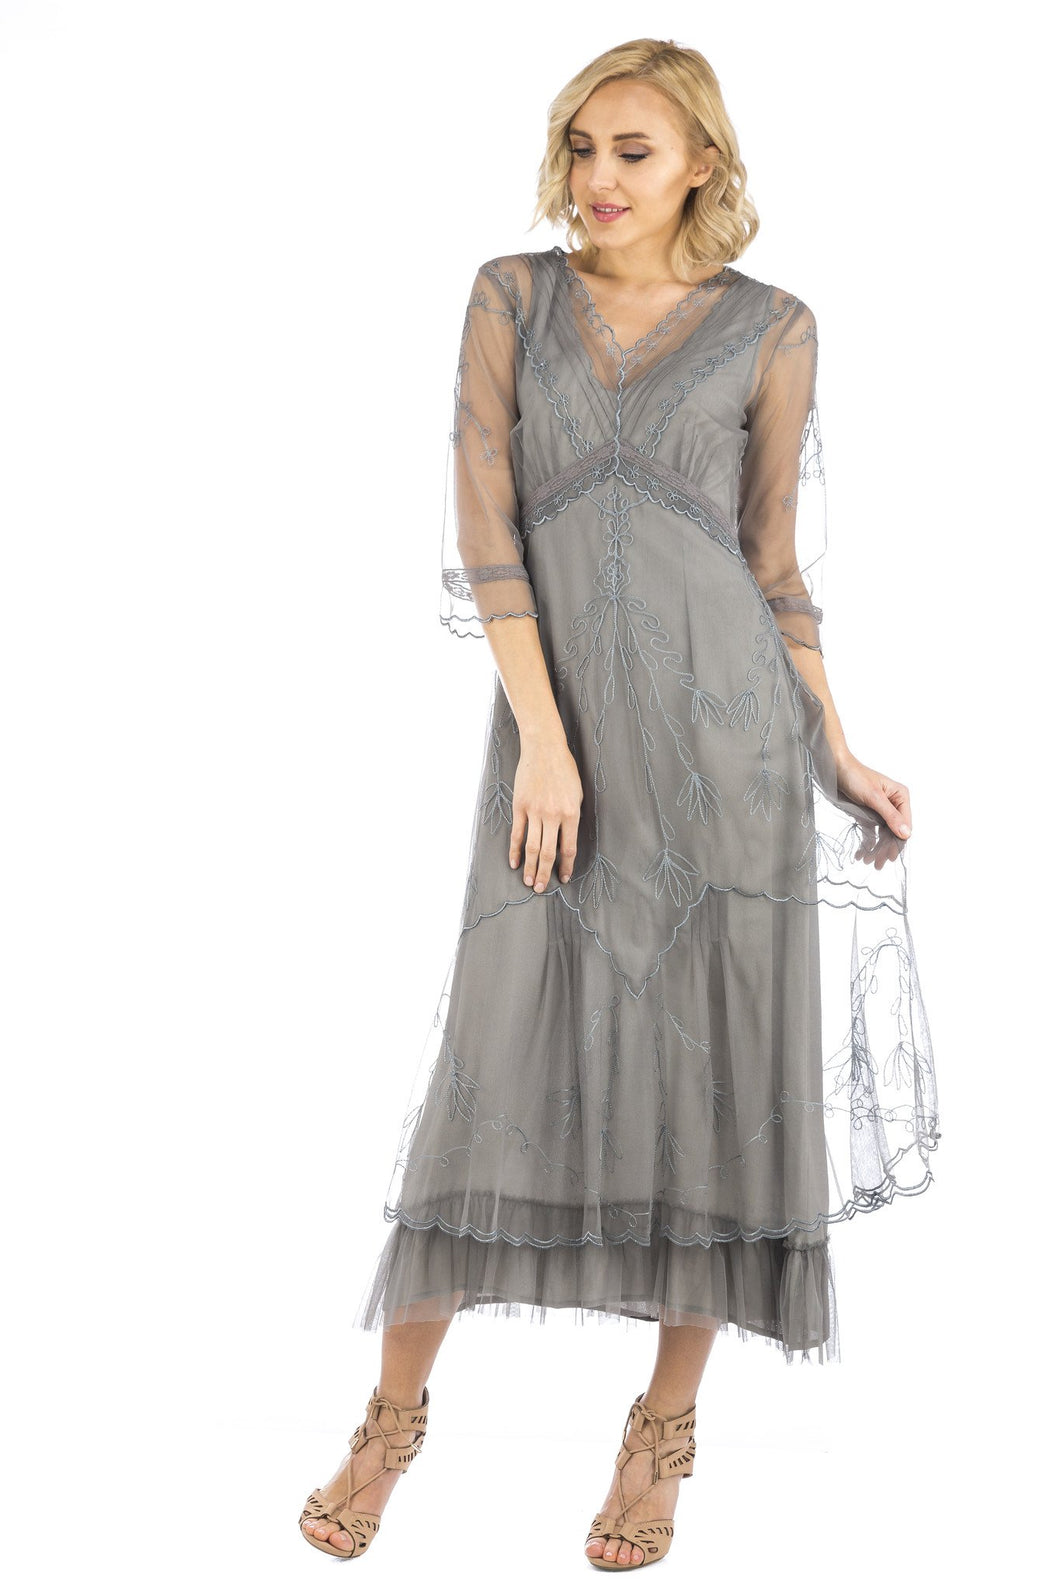 Nataya Sophia CL-509 Smoke Dress